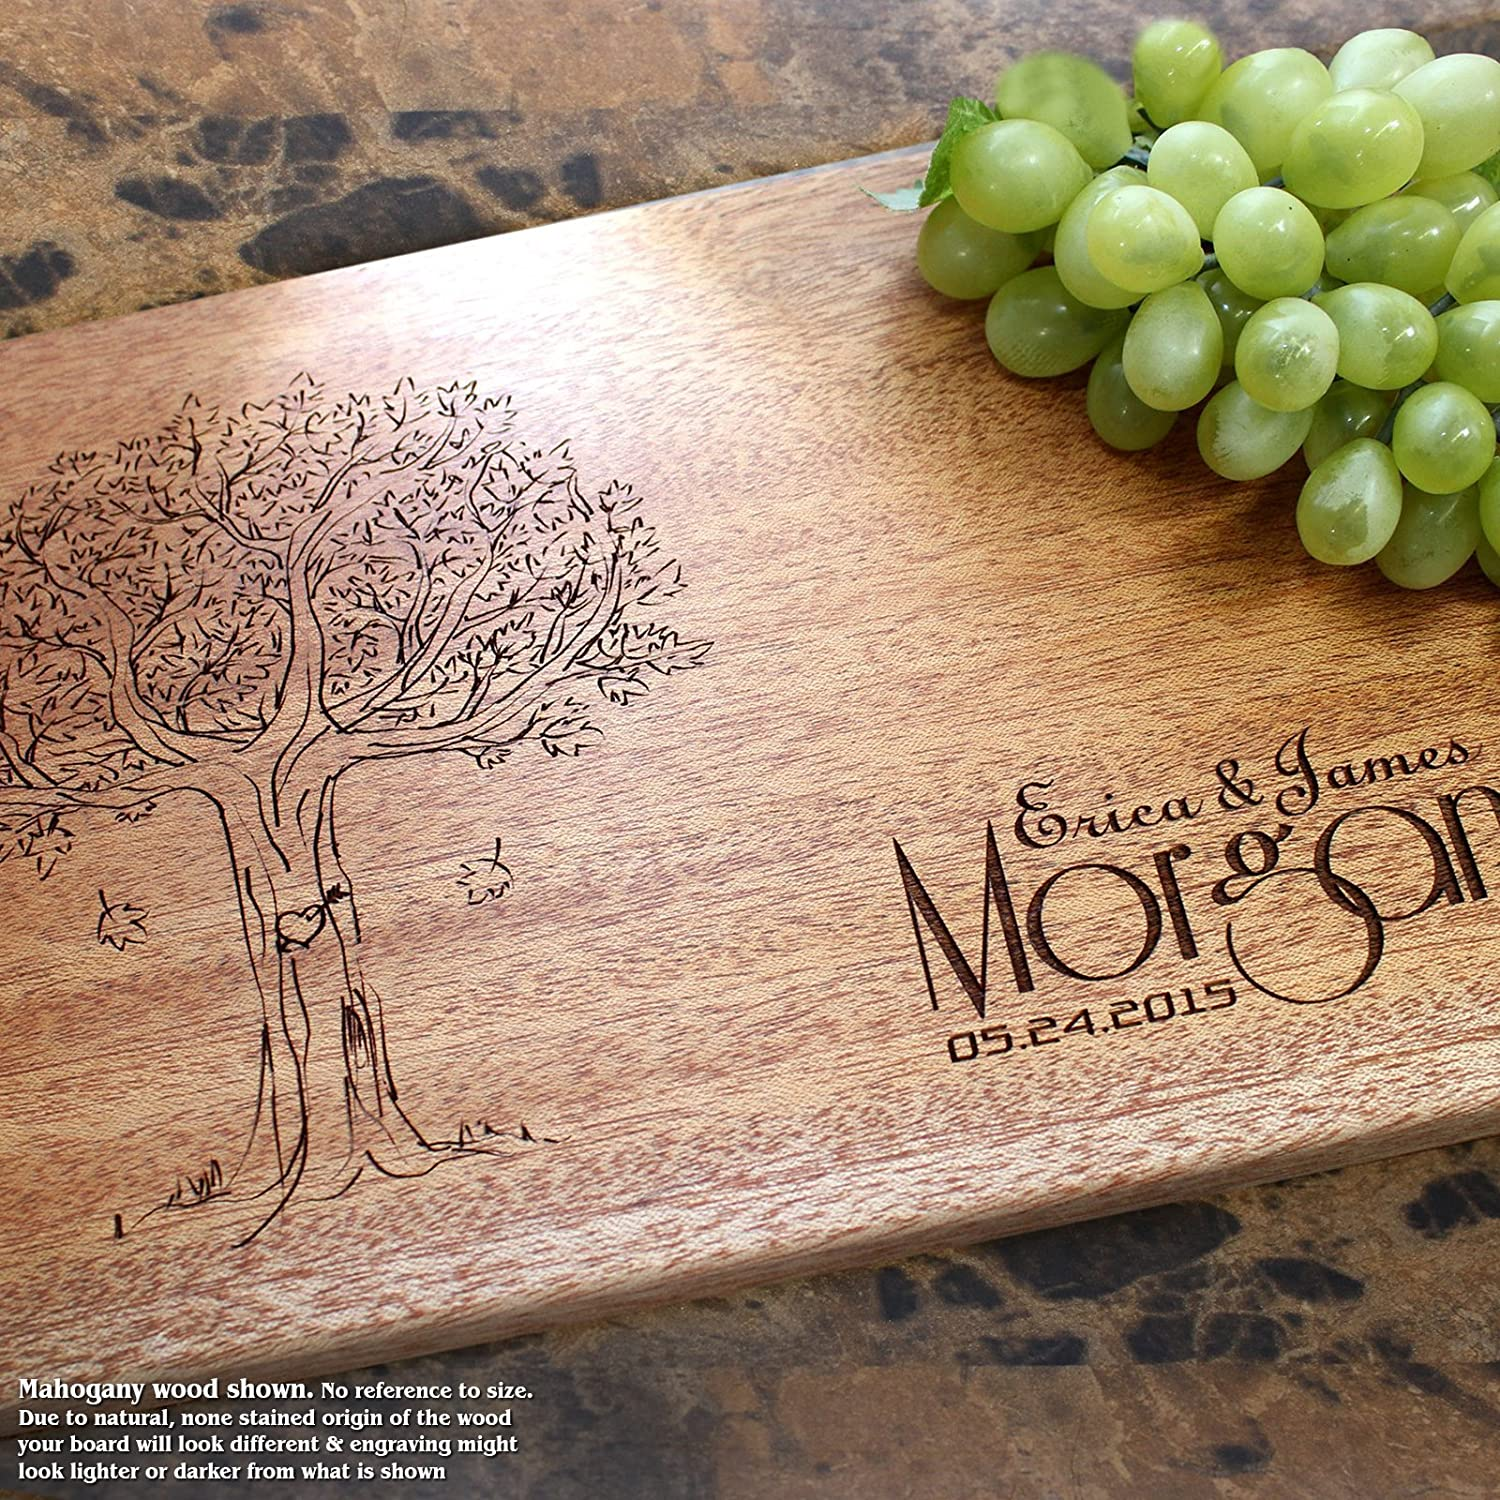 Personalized Cutting Board, Custom Keepsake, Engraved Serving Cheese Plate, Wedding, Anniversary, Engagement, Housewarming, Birthday, Corporate, Closing Gift #404